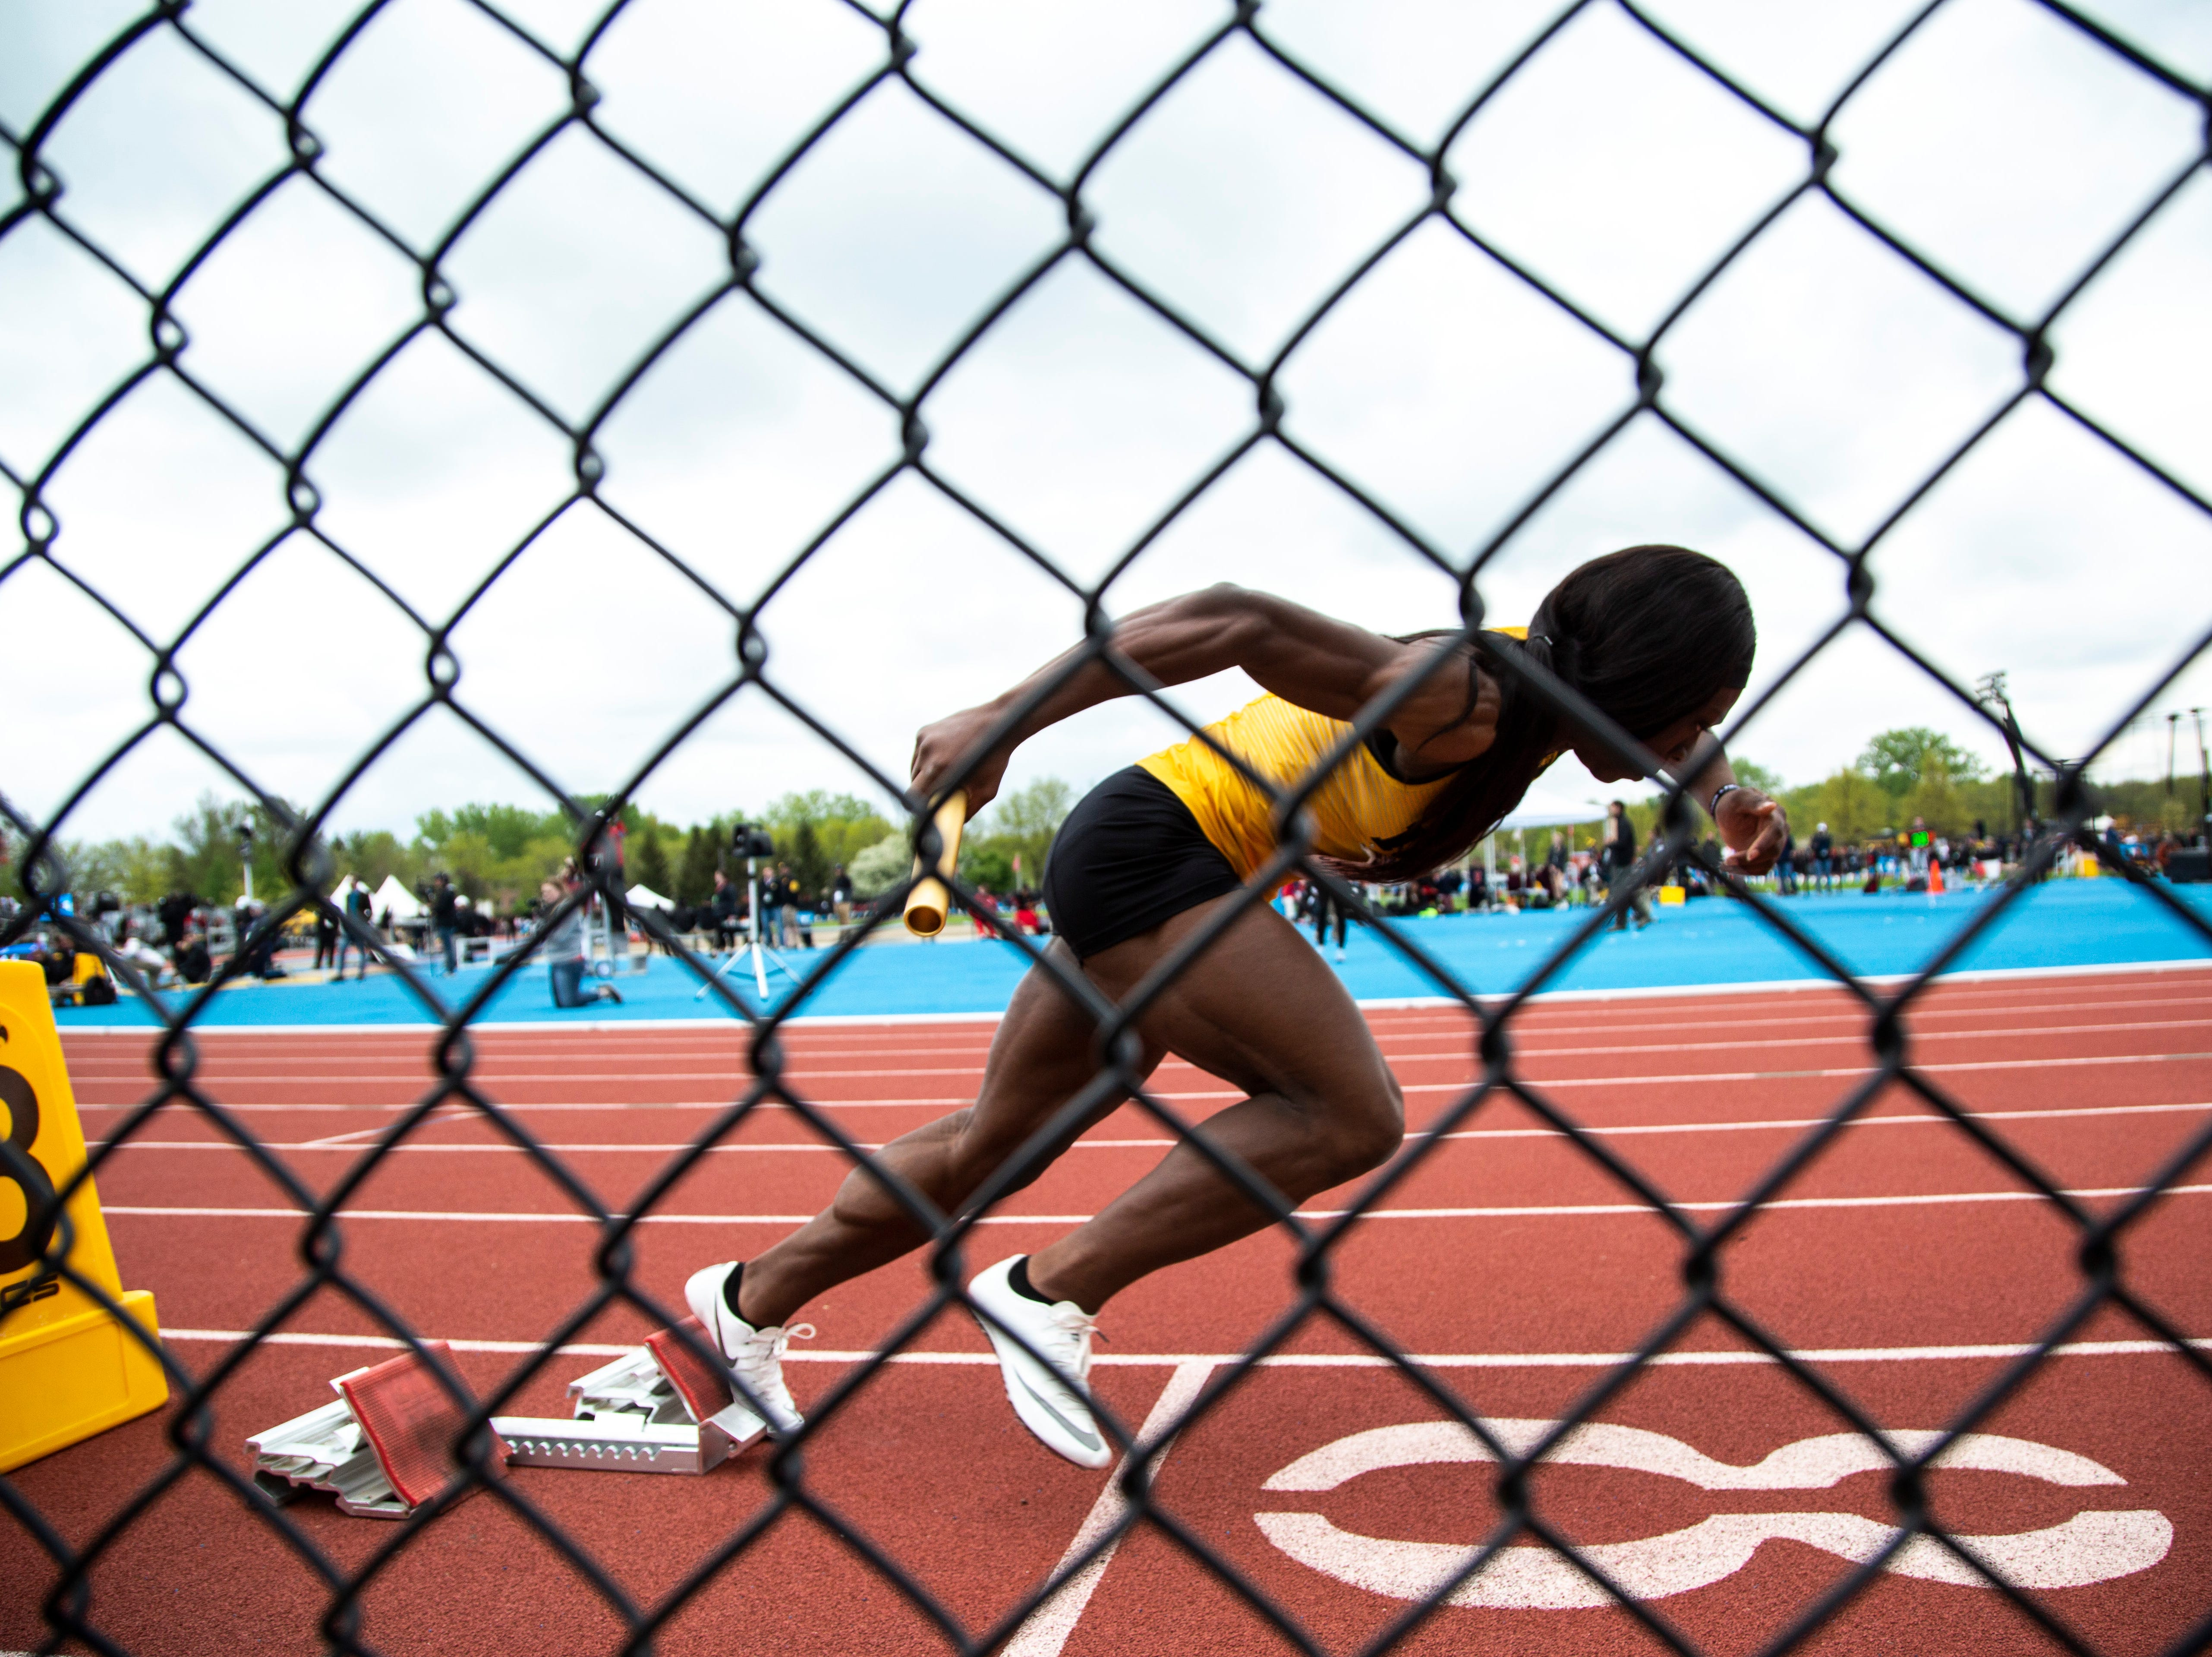 Iowa's Antonise Christian breaks out of the blocks during the 4x100 meter relay during the final day of Big Ten track and field outdoor championships, Sunday, May 12, 2019, at Francis X. Cretzmeyer Track on the University of Iowa campus in Iowa City, Iowa.